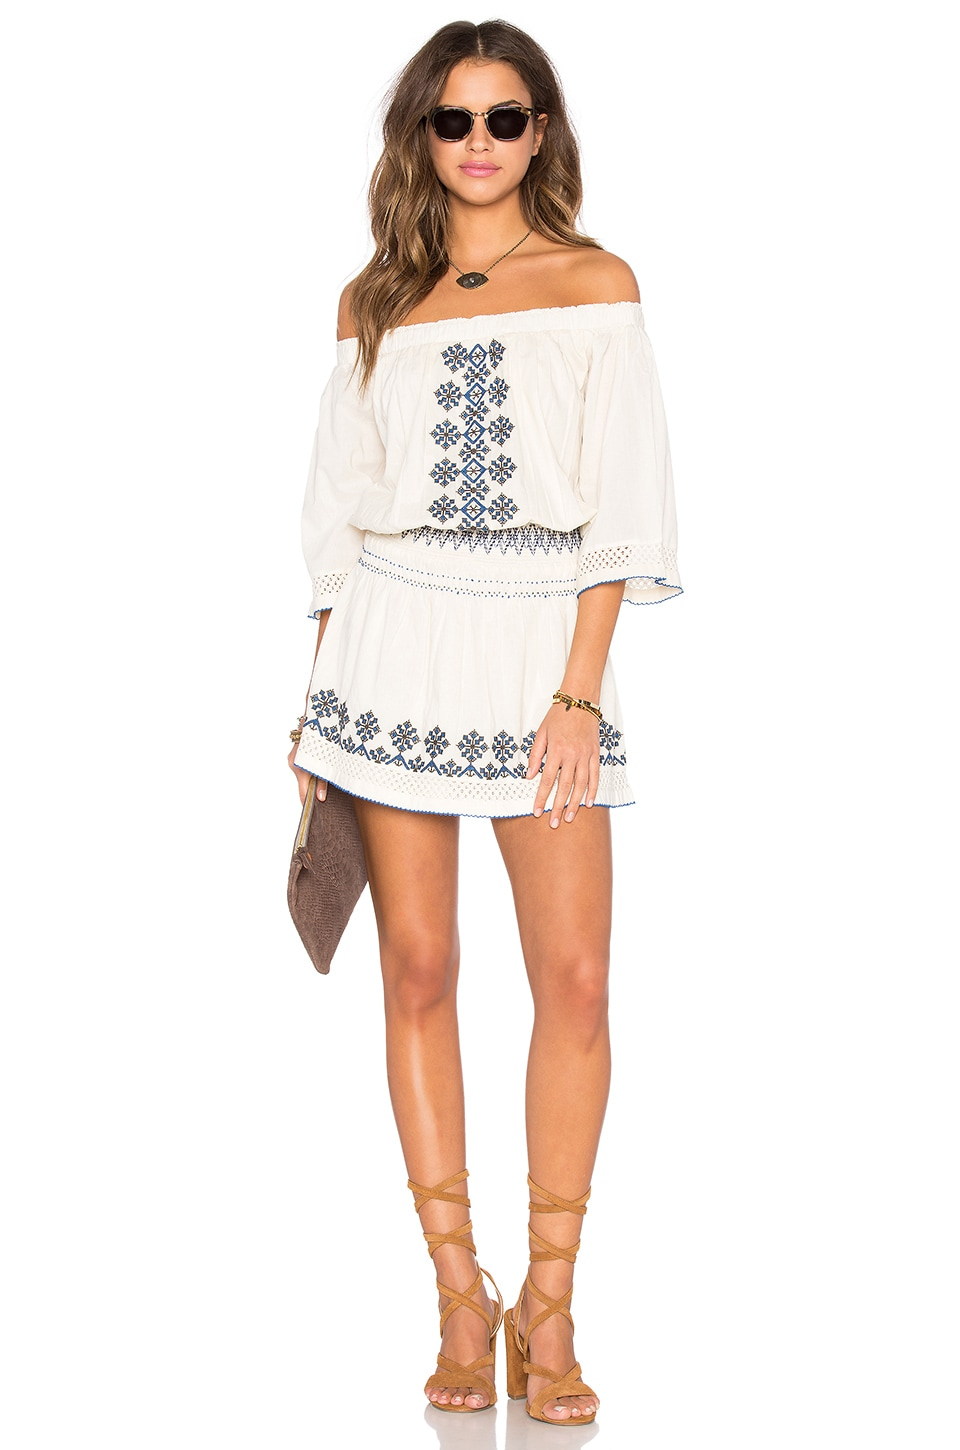 x REVOLVE Marietta Dress by Tularosa